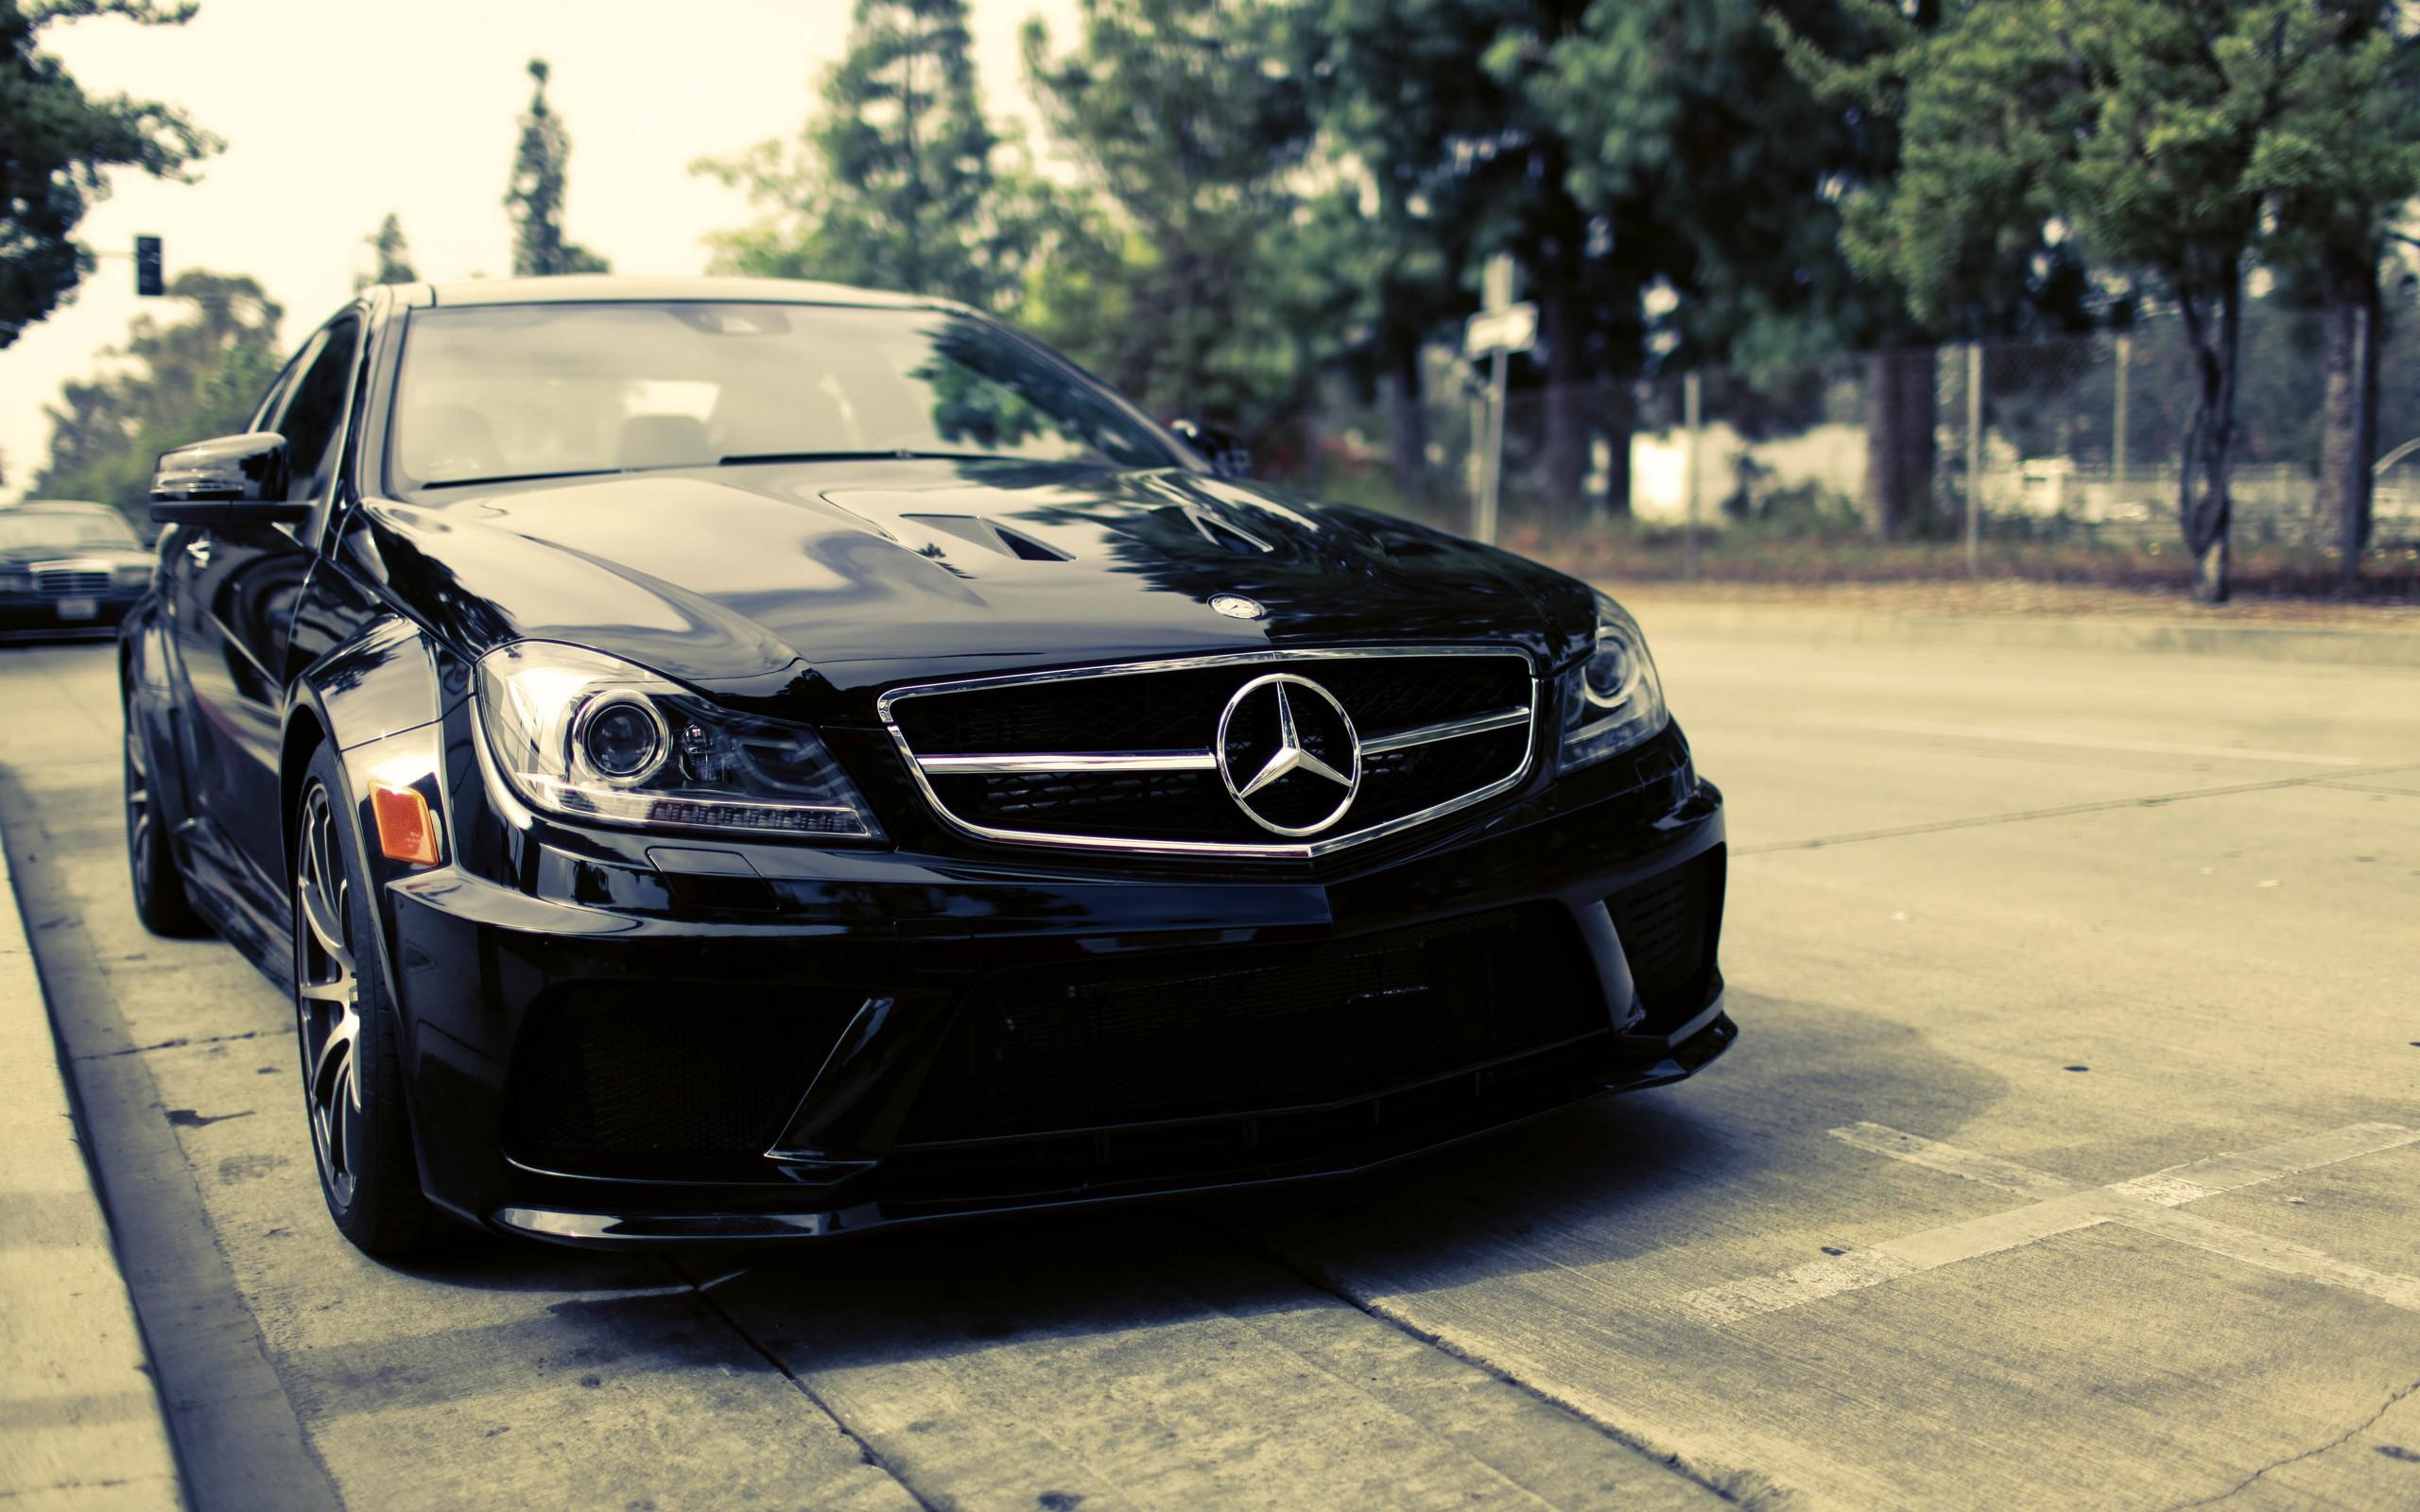 Download Mercedes C63 AMG 24 HD Image Full Size